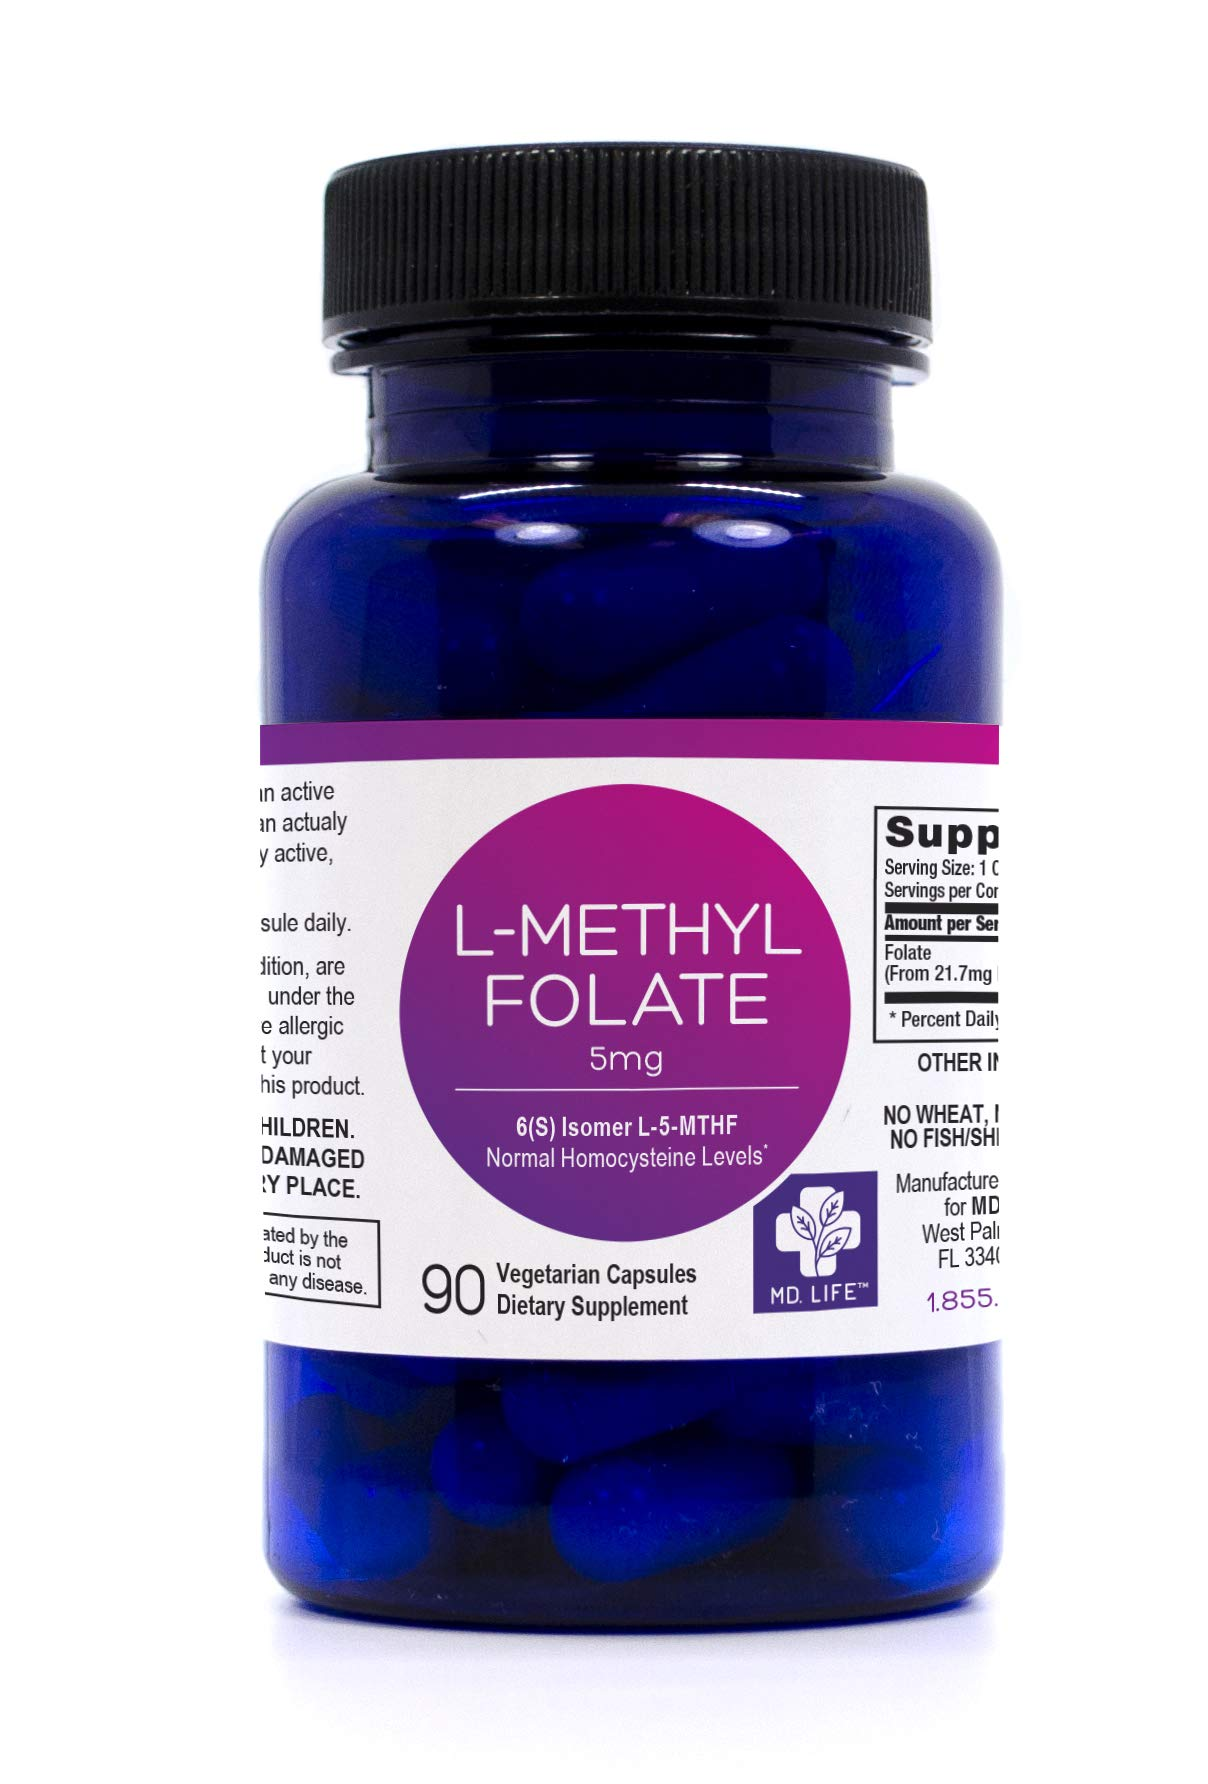 MD.LIFE L-Methylfolate 5 mg Professional Strength Active Folate 90 Caps by MD.LIFE